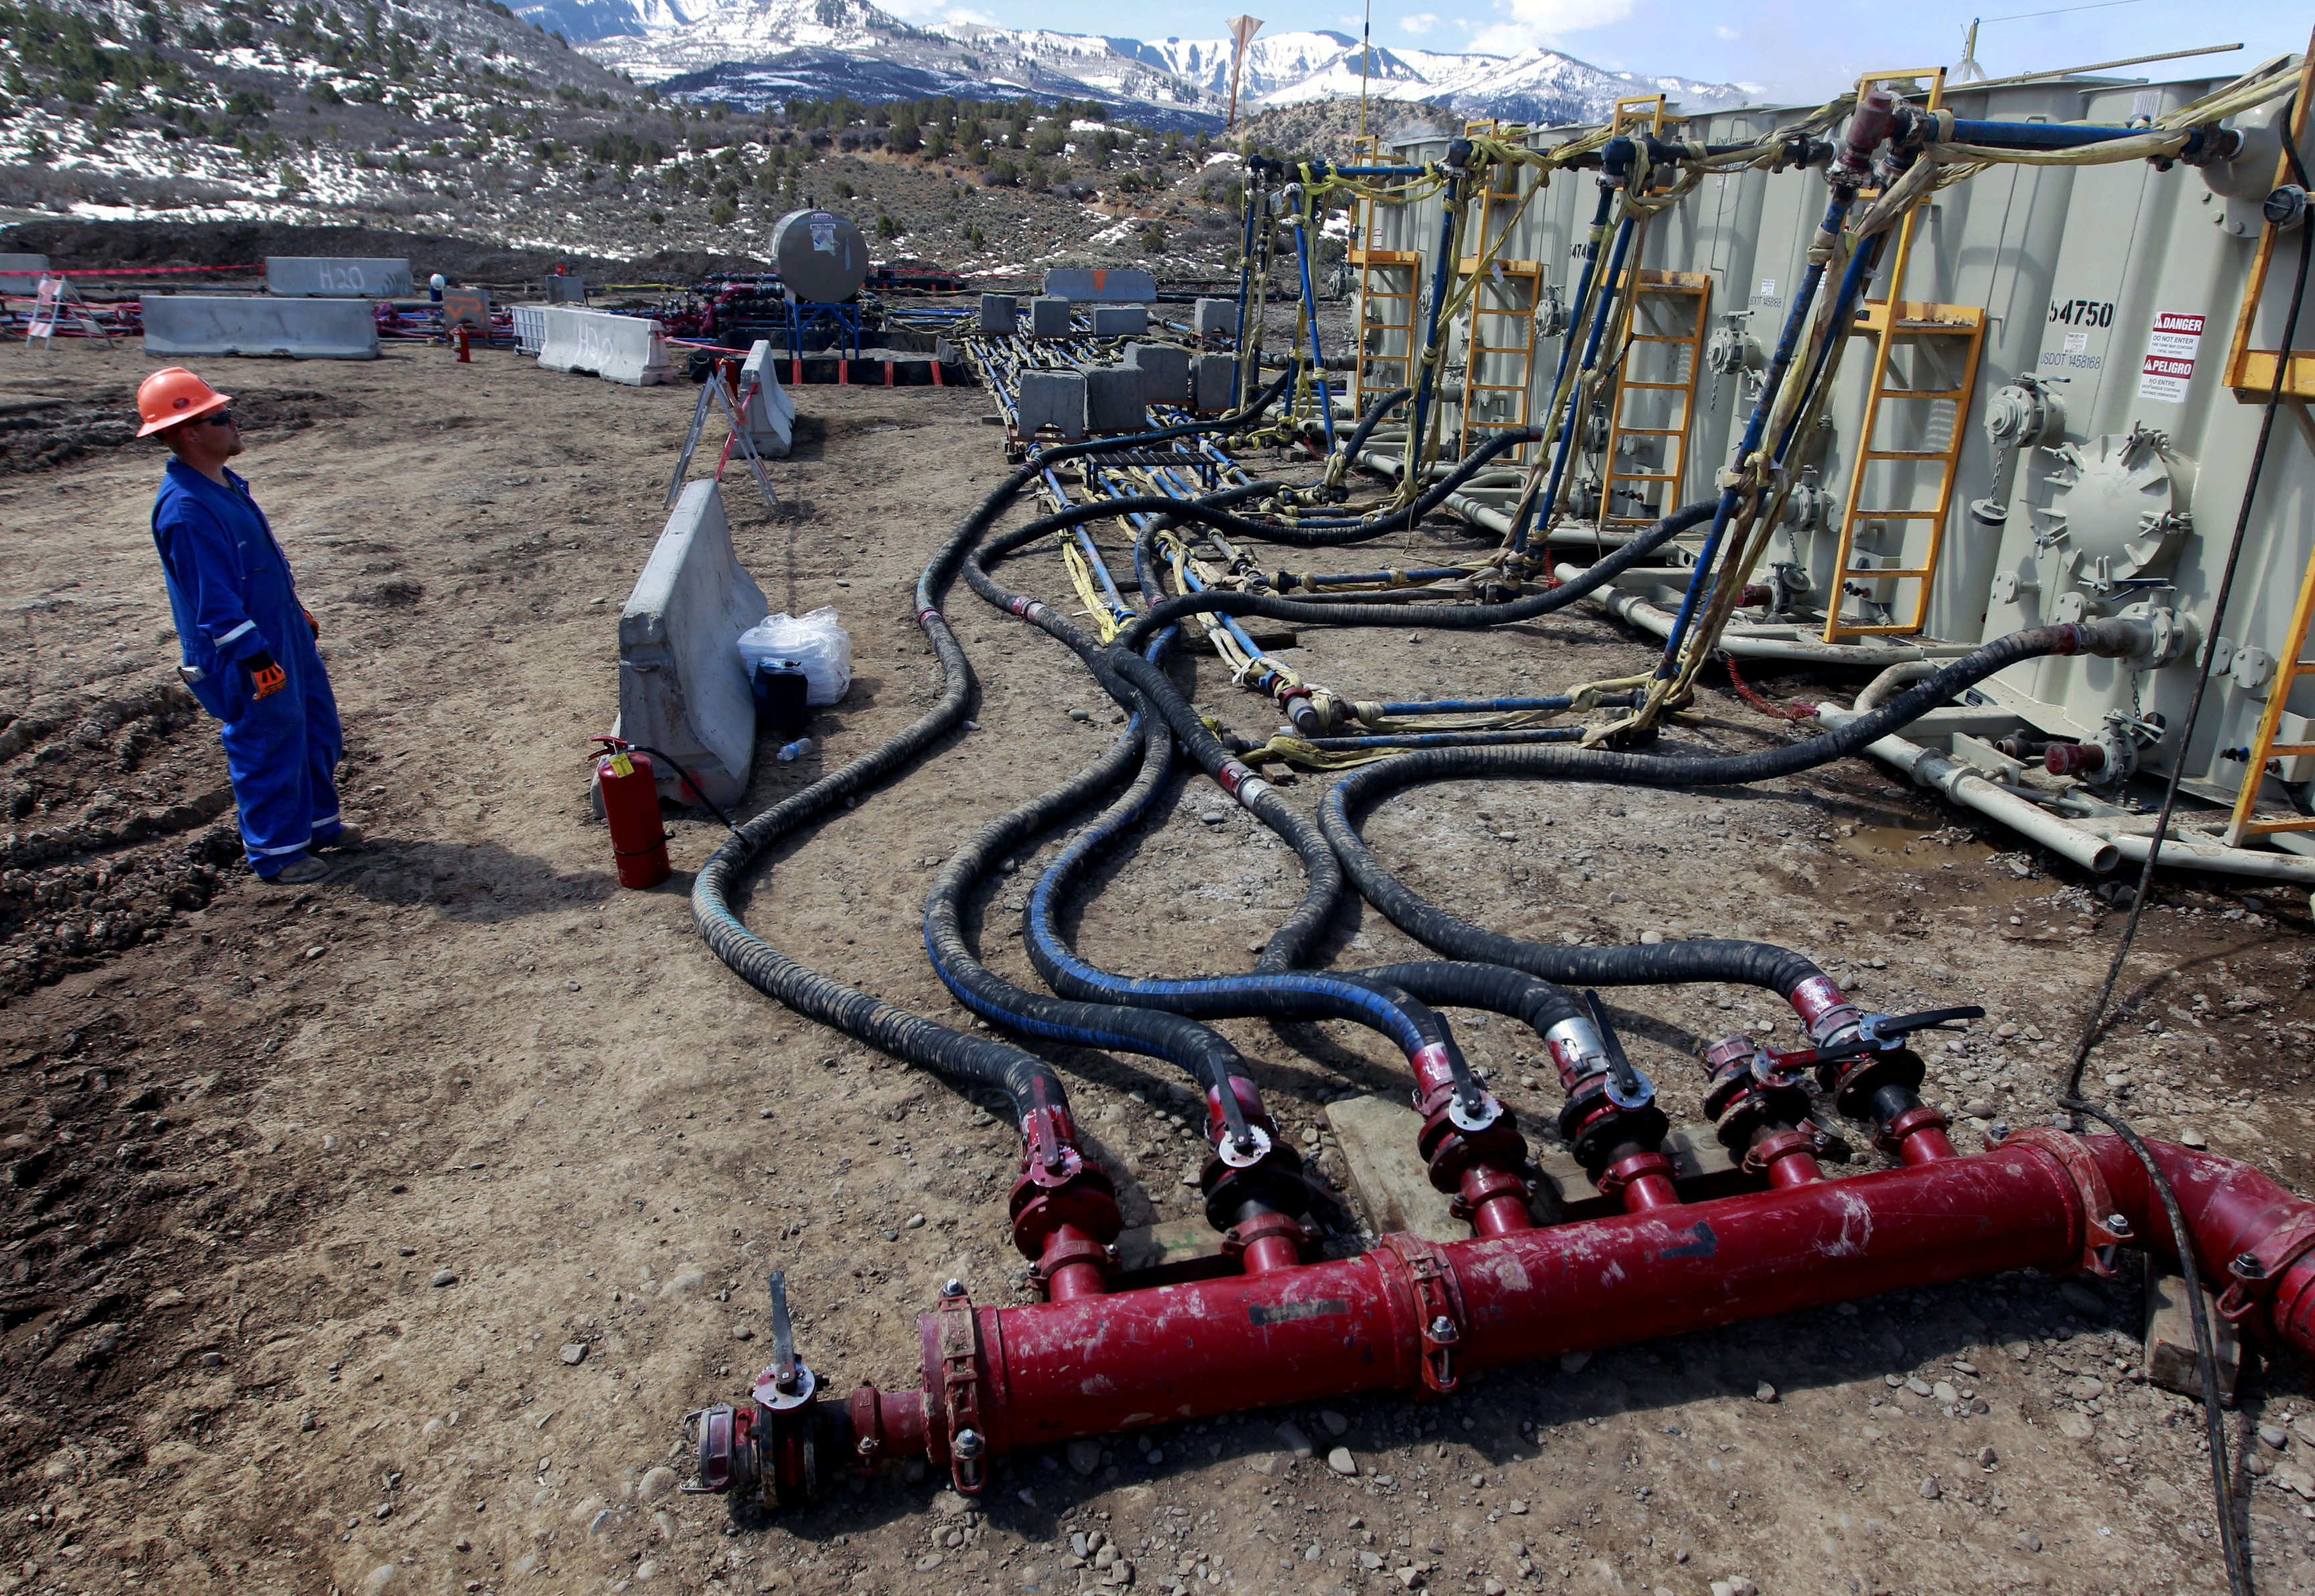 Photo: Oil And Gas Extraction Site Near Rifle - AP photo